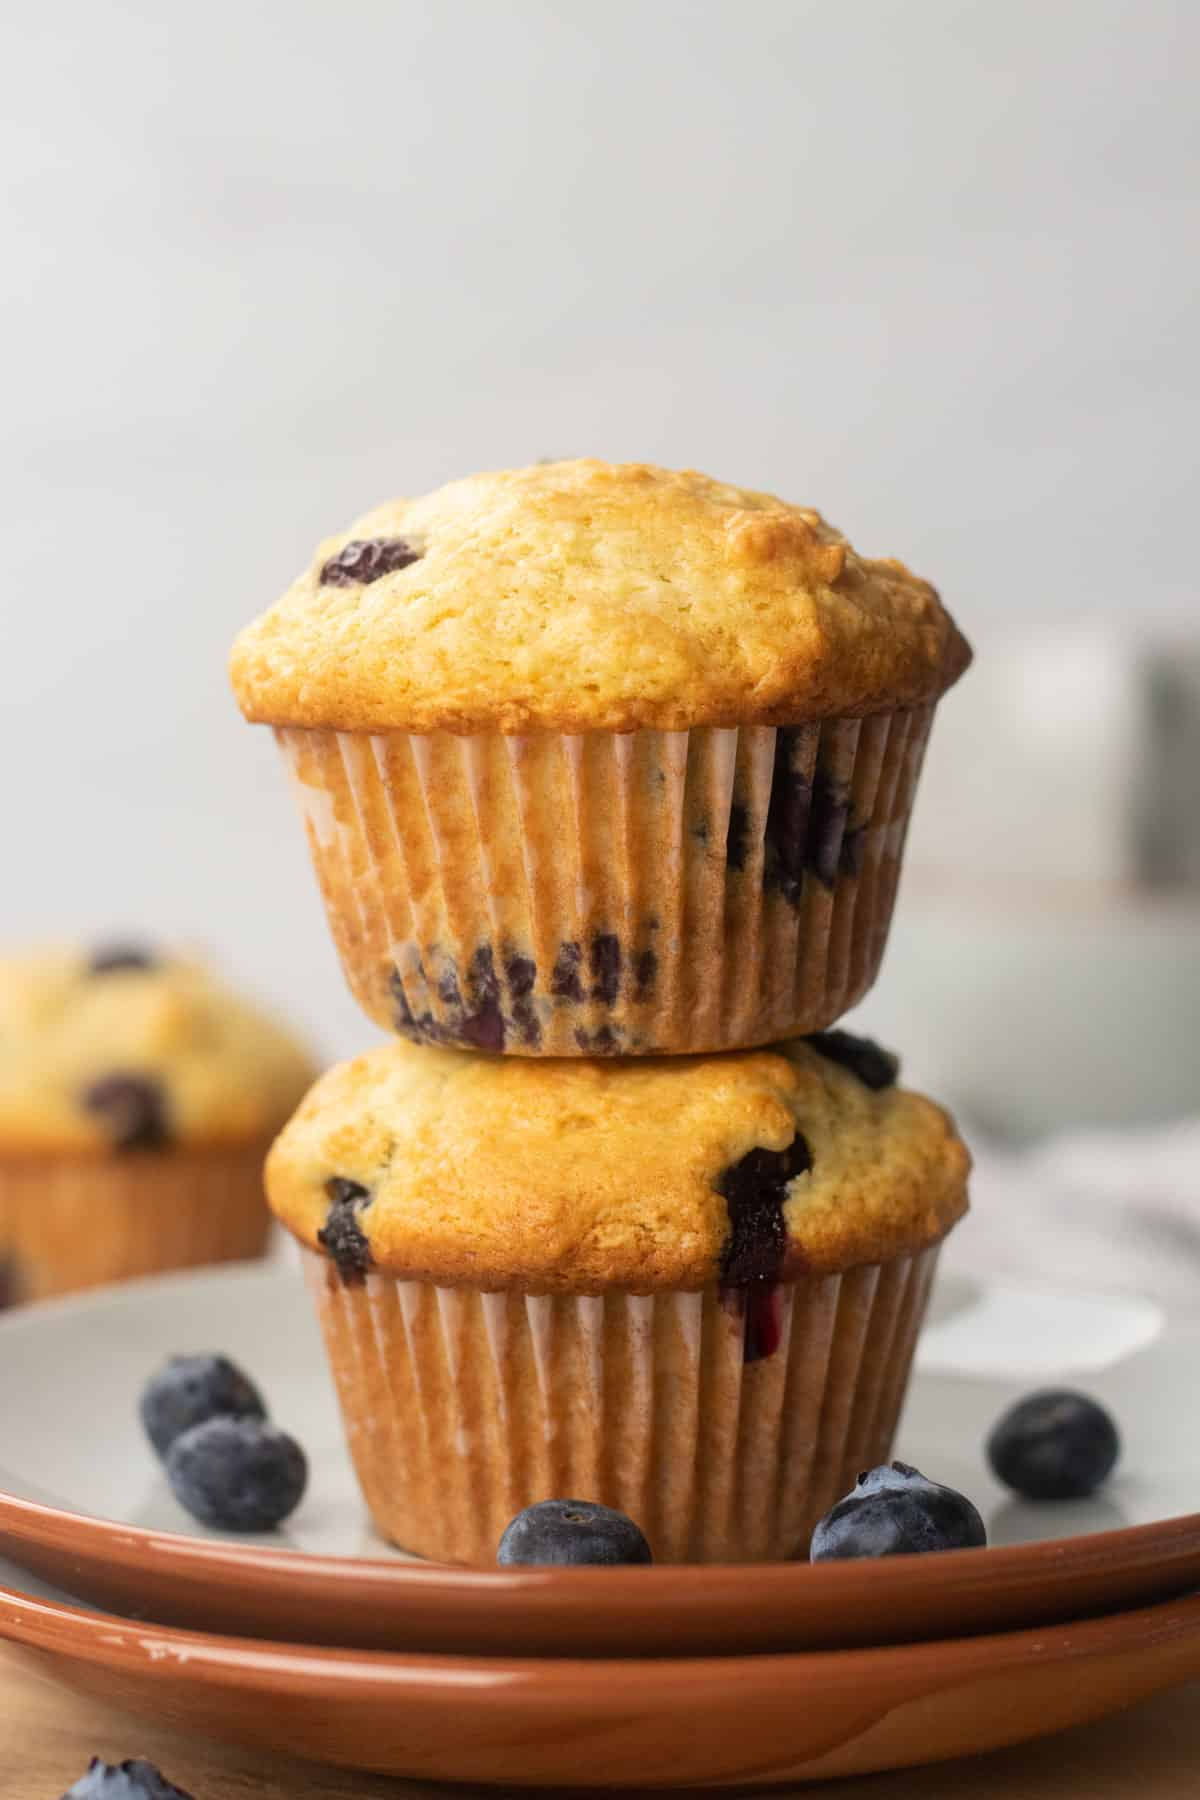 Two Blueberry muffins on top of each other.